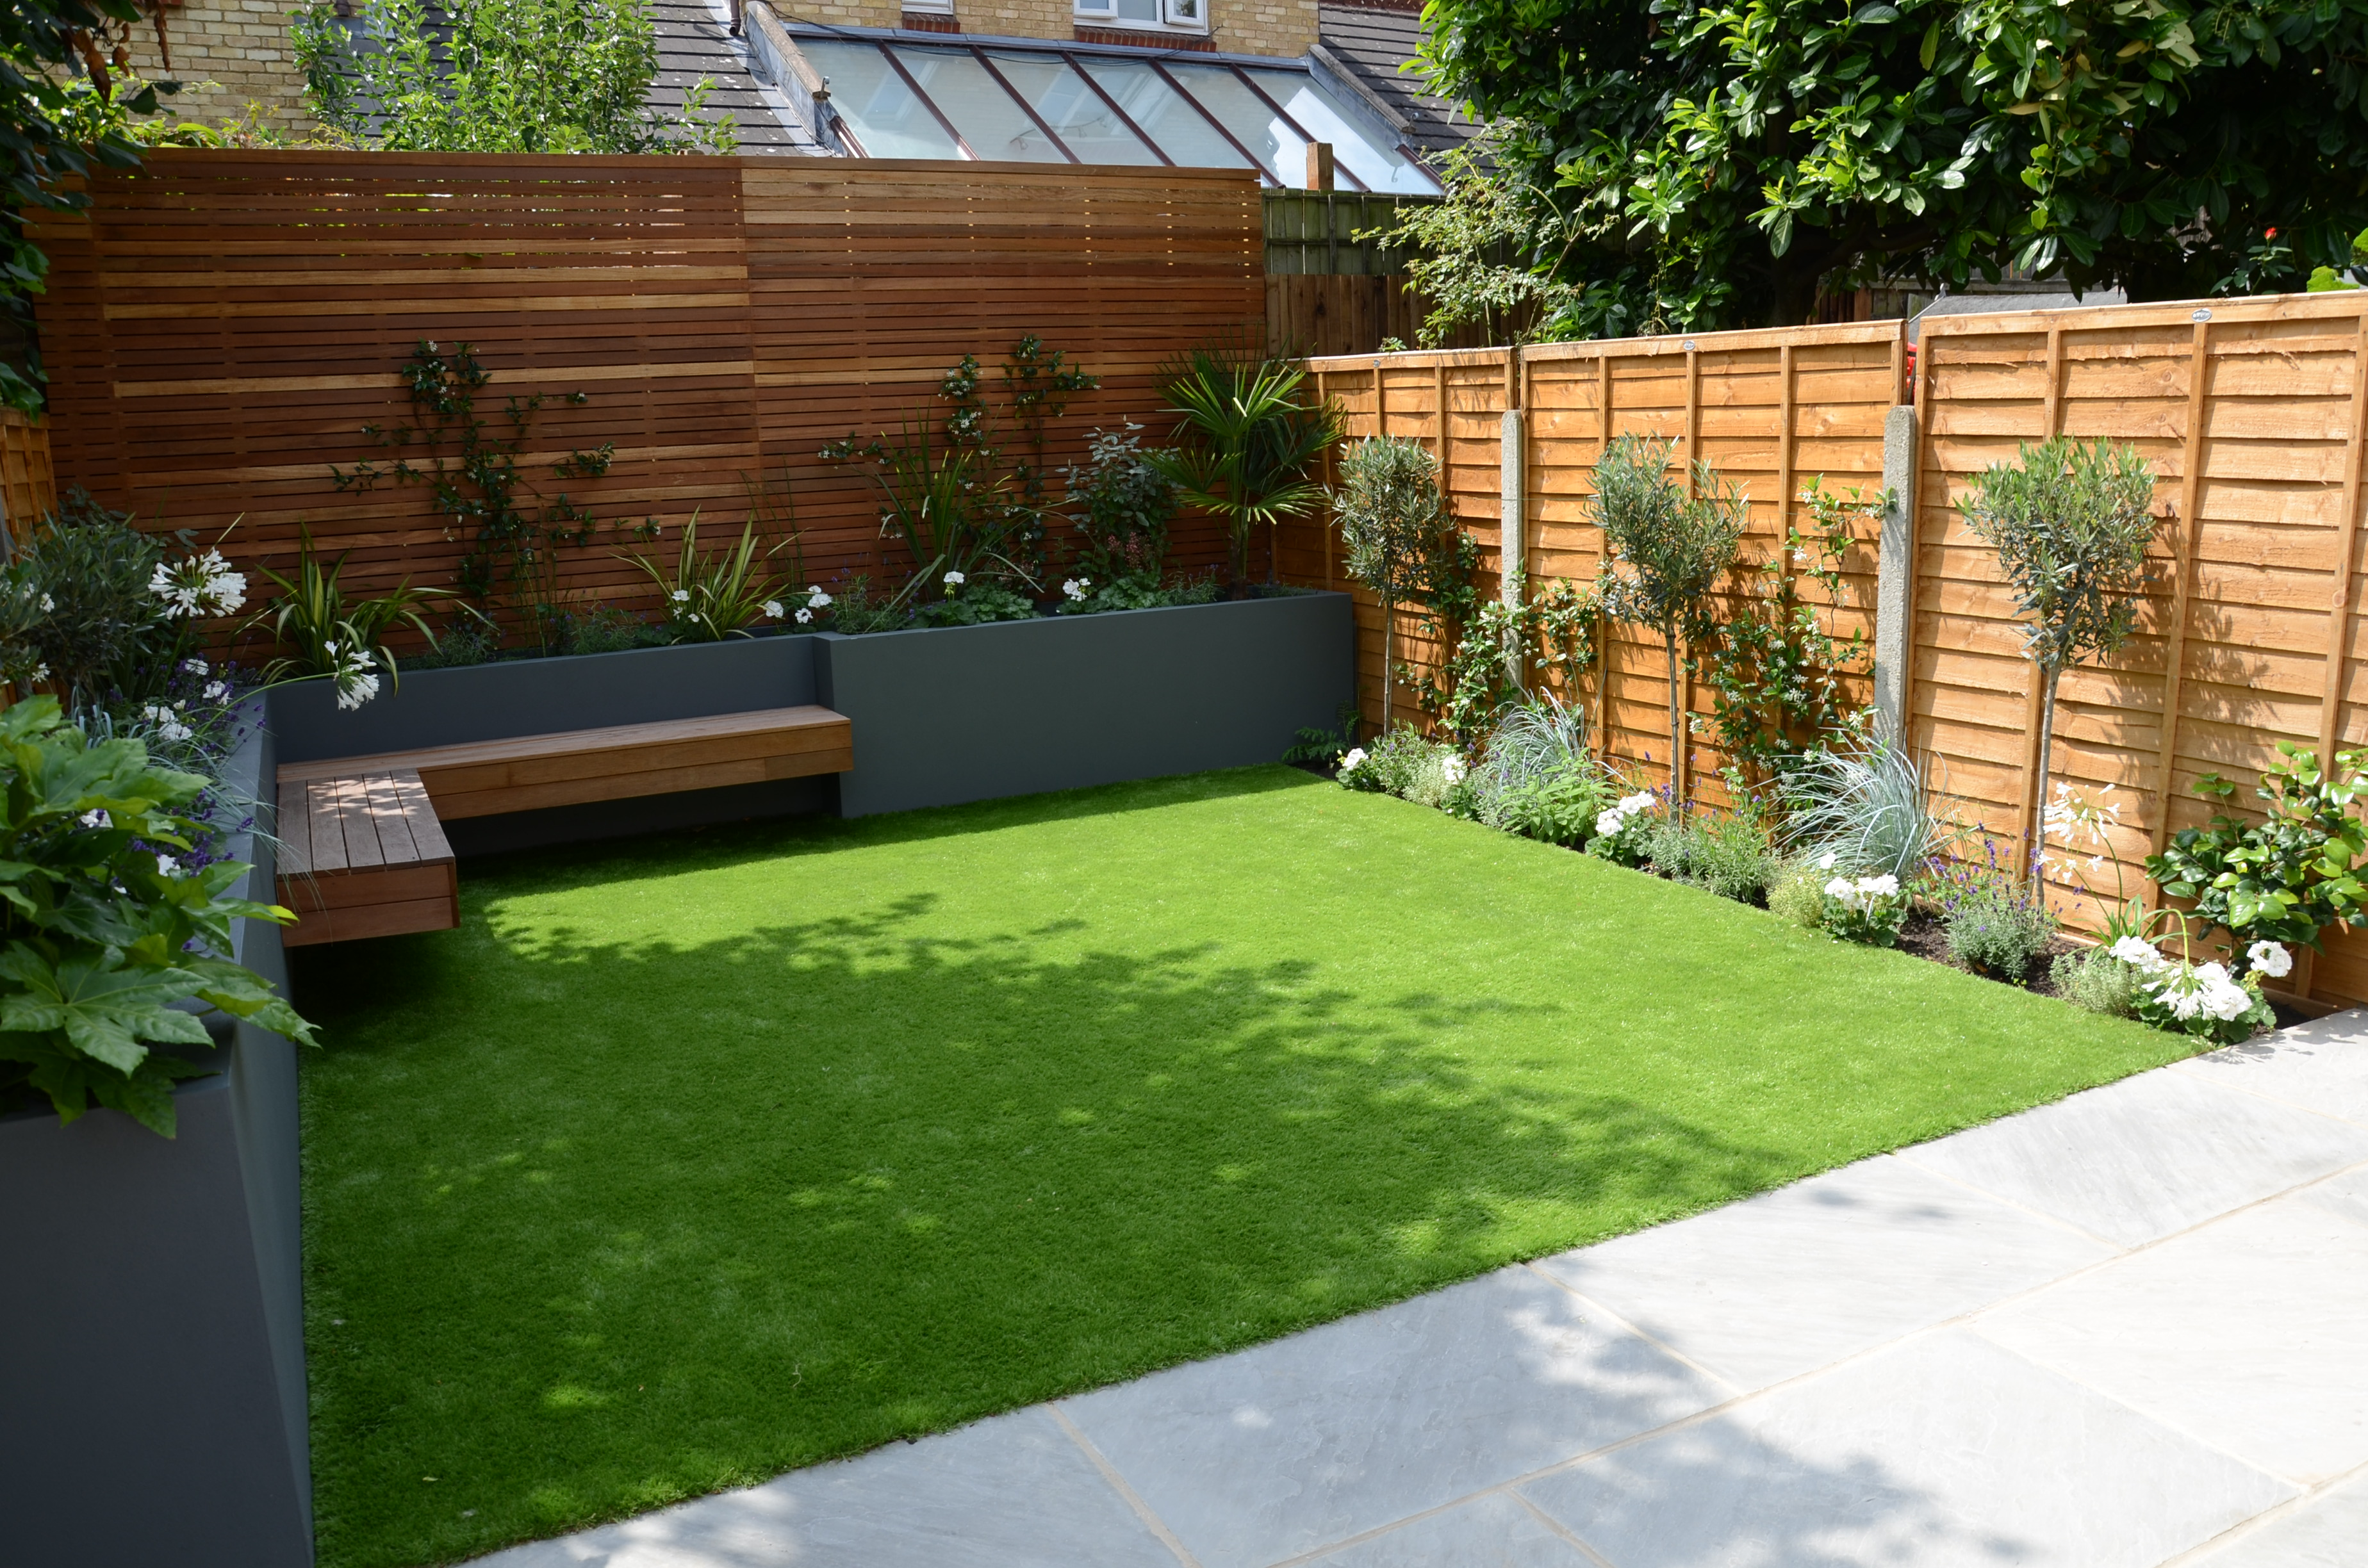 Garden Design chelsea screen raised beds wonderful ...